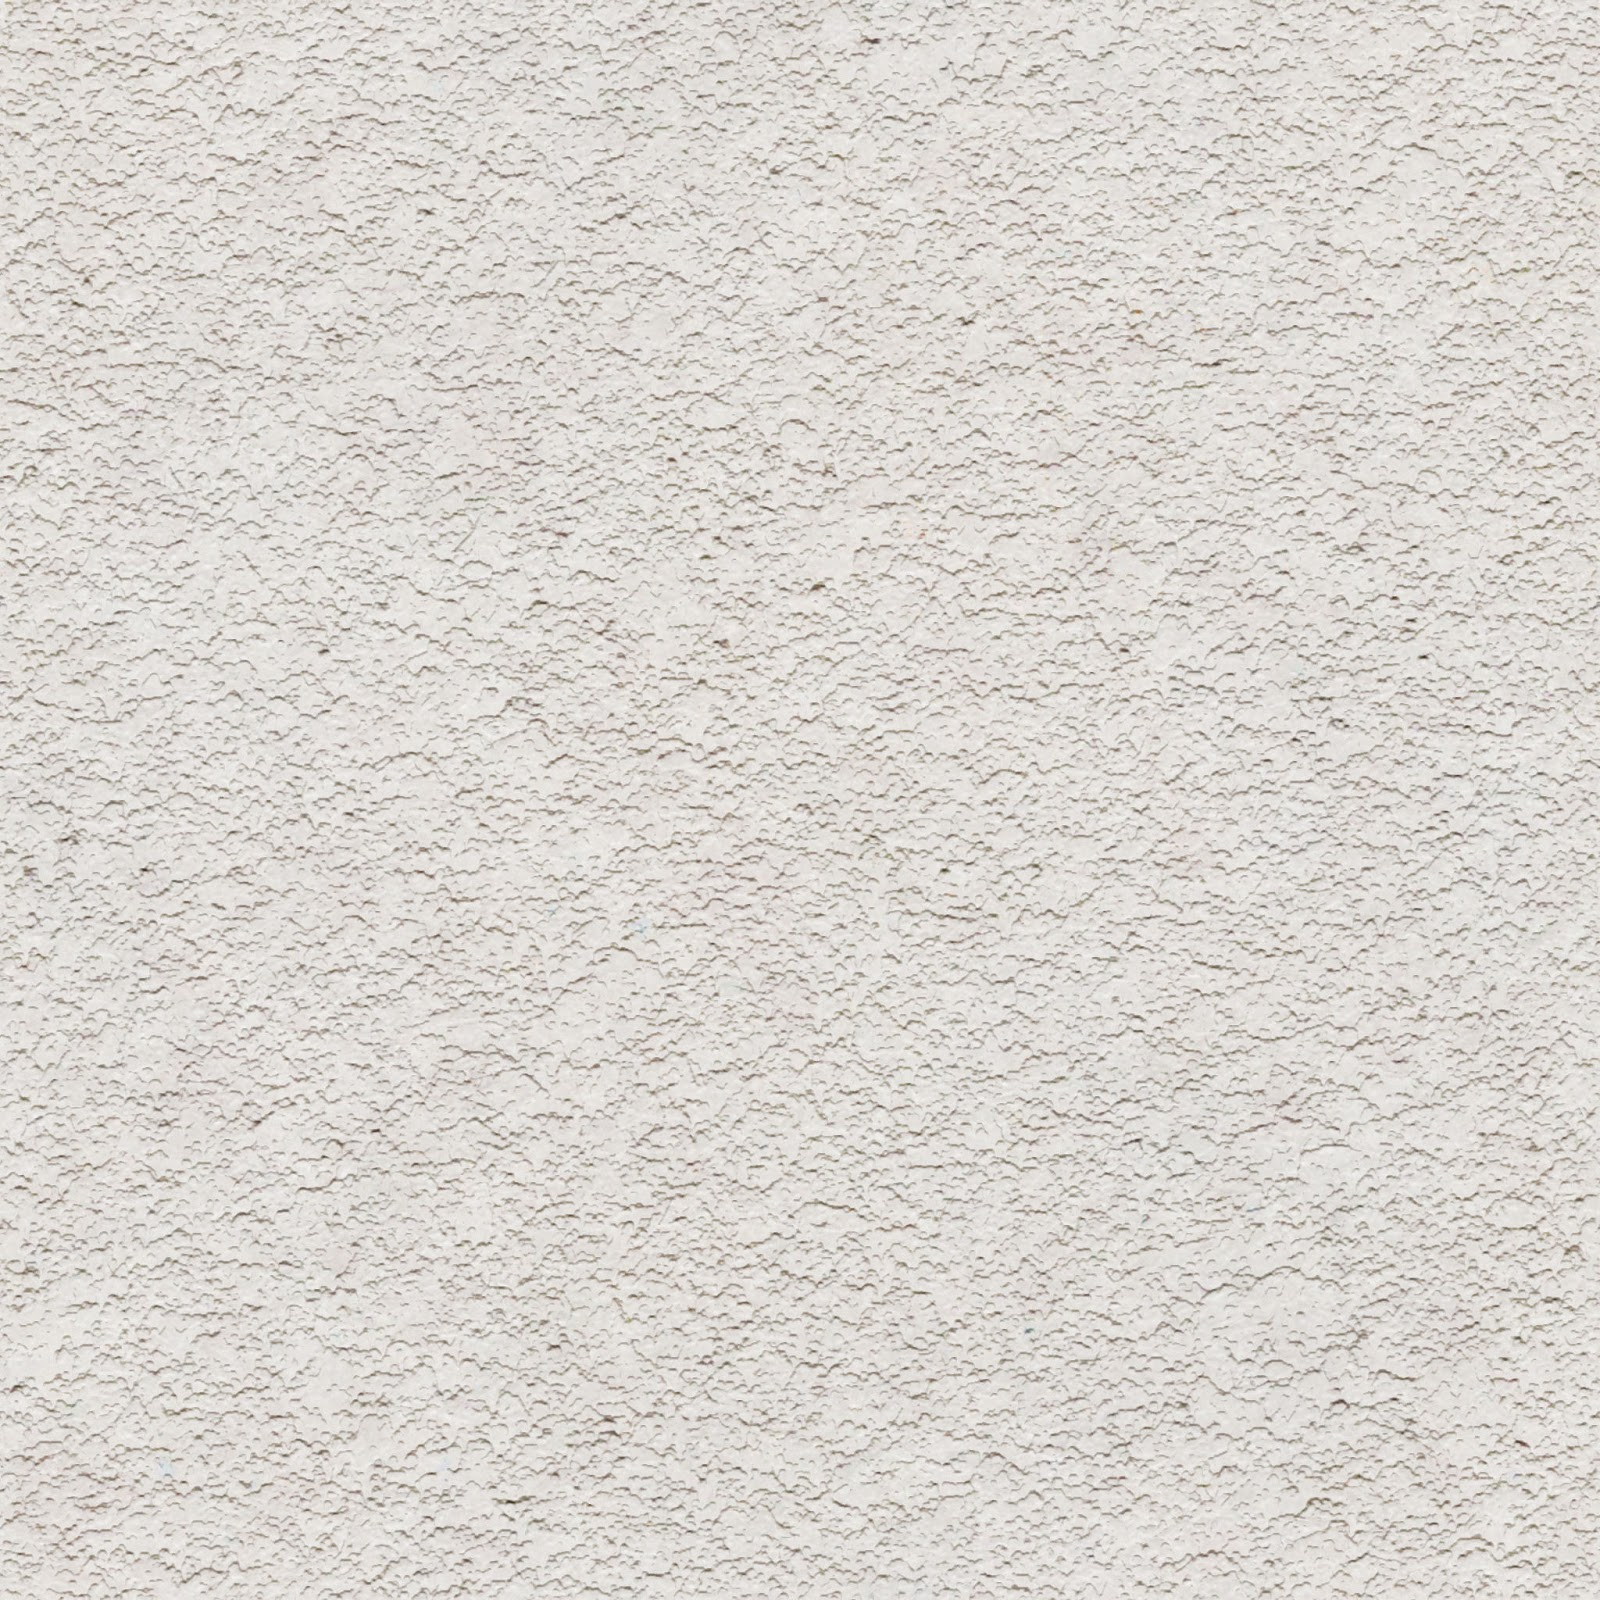 Smooth_stucco_white_paint_plaster_wall_texture_seamless_tileable